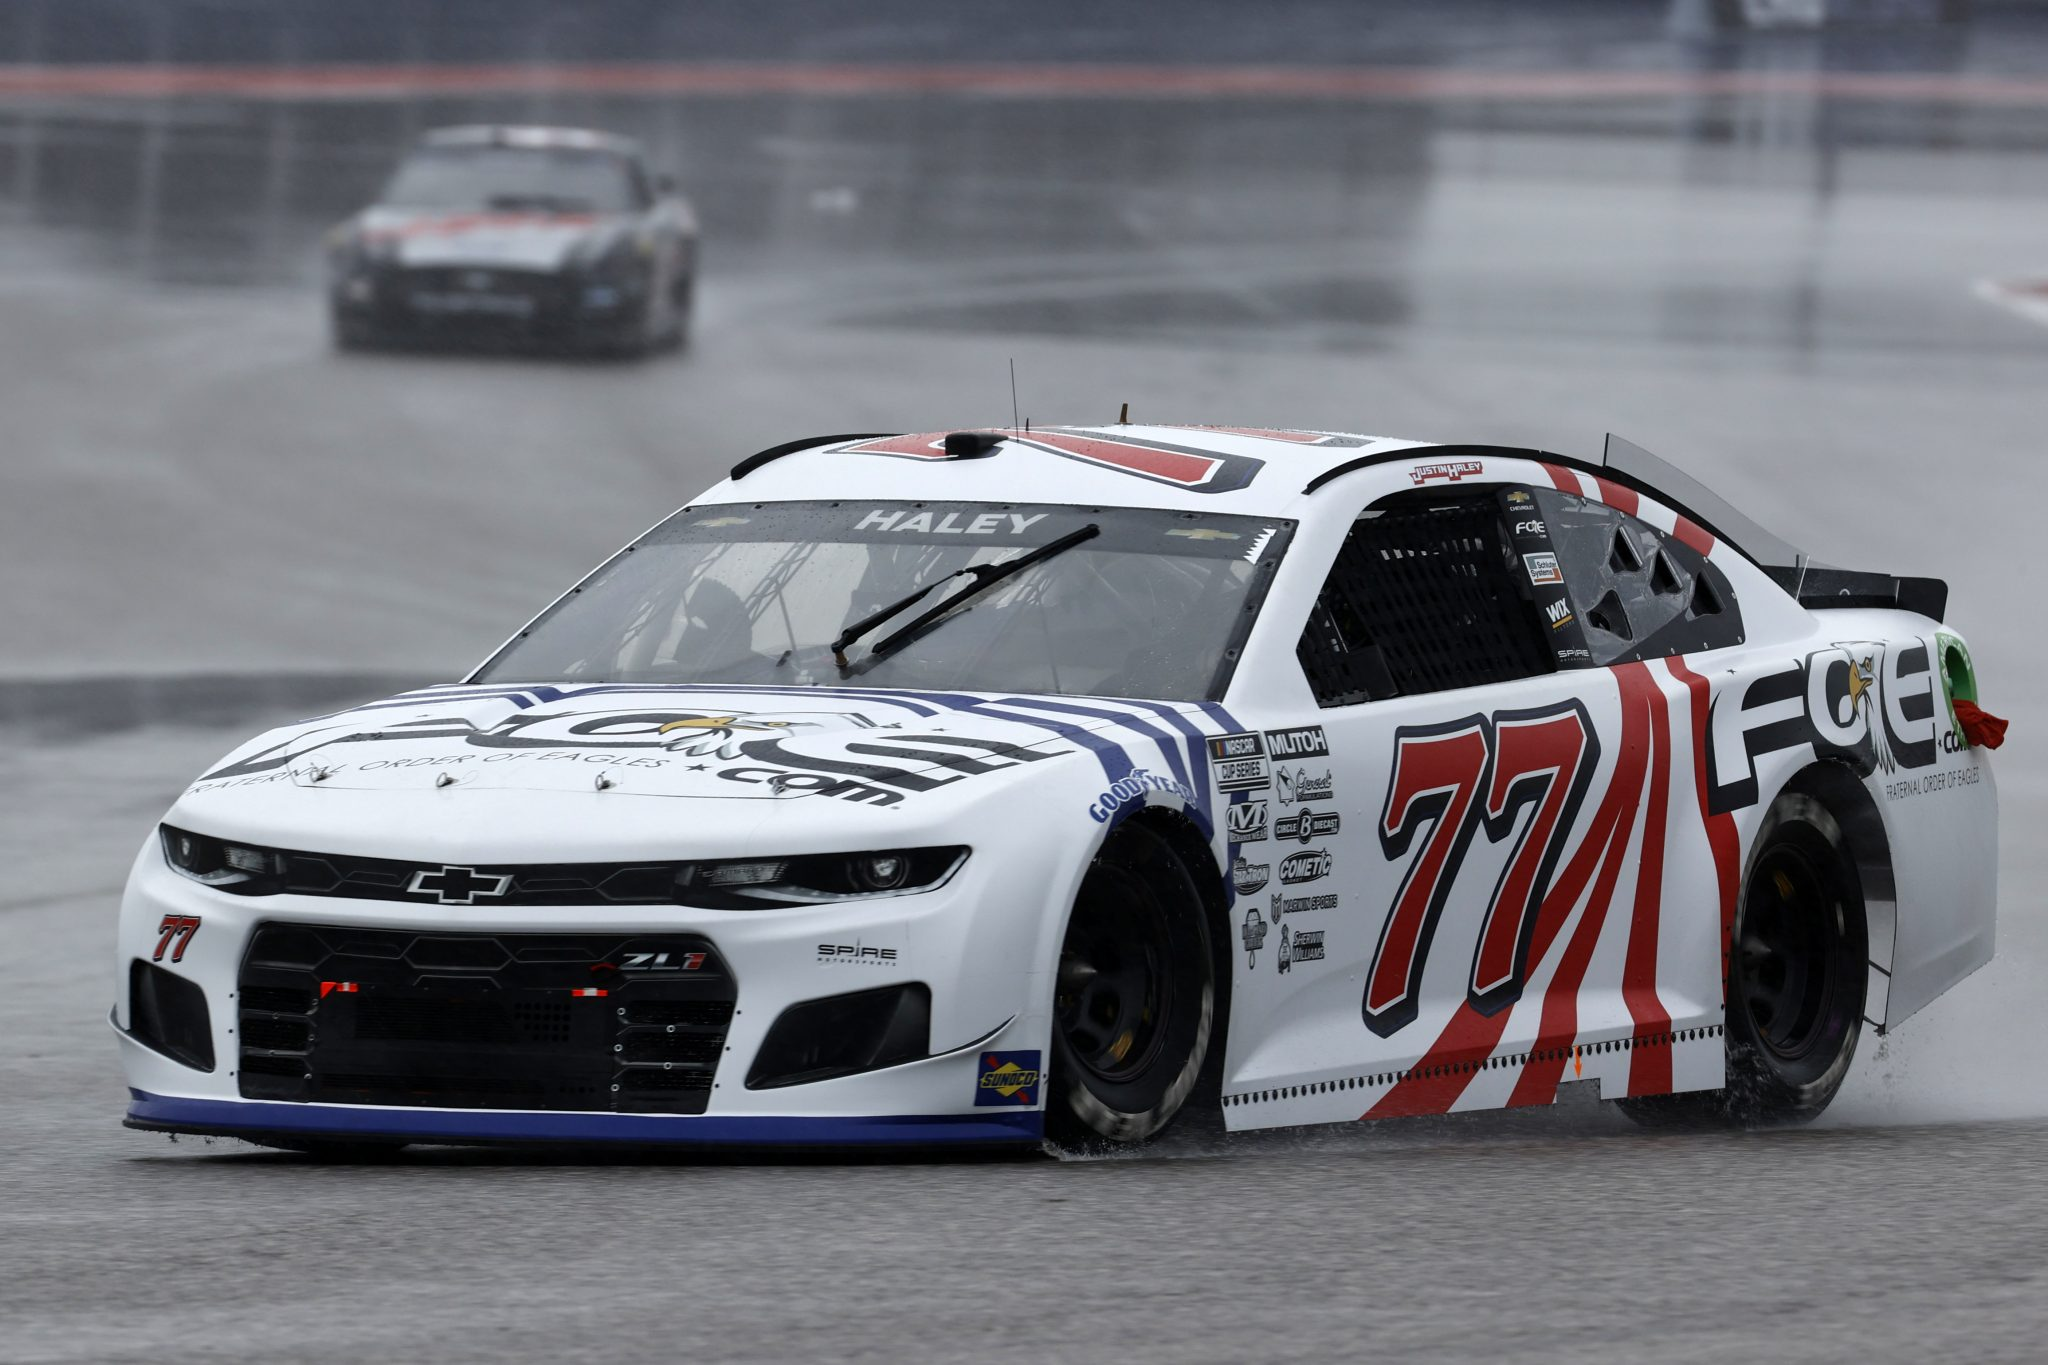 AUSTIN, TEXAS - MAY 22: Justin Haley, driver of the #77 Fraternal Order of Eagles Chevrolet, drives during practice for the NASCAR Cup Series EchoPark Texas Grand at Circuit of The Americas on May 22, 2021 in Austin, Texas. (Photo by Chris Graythen/Getty Images) | Getty Images